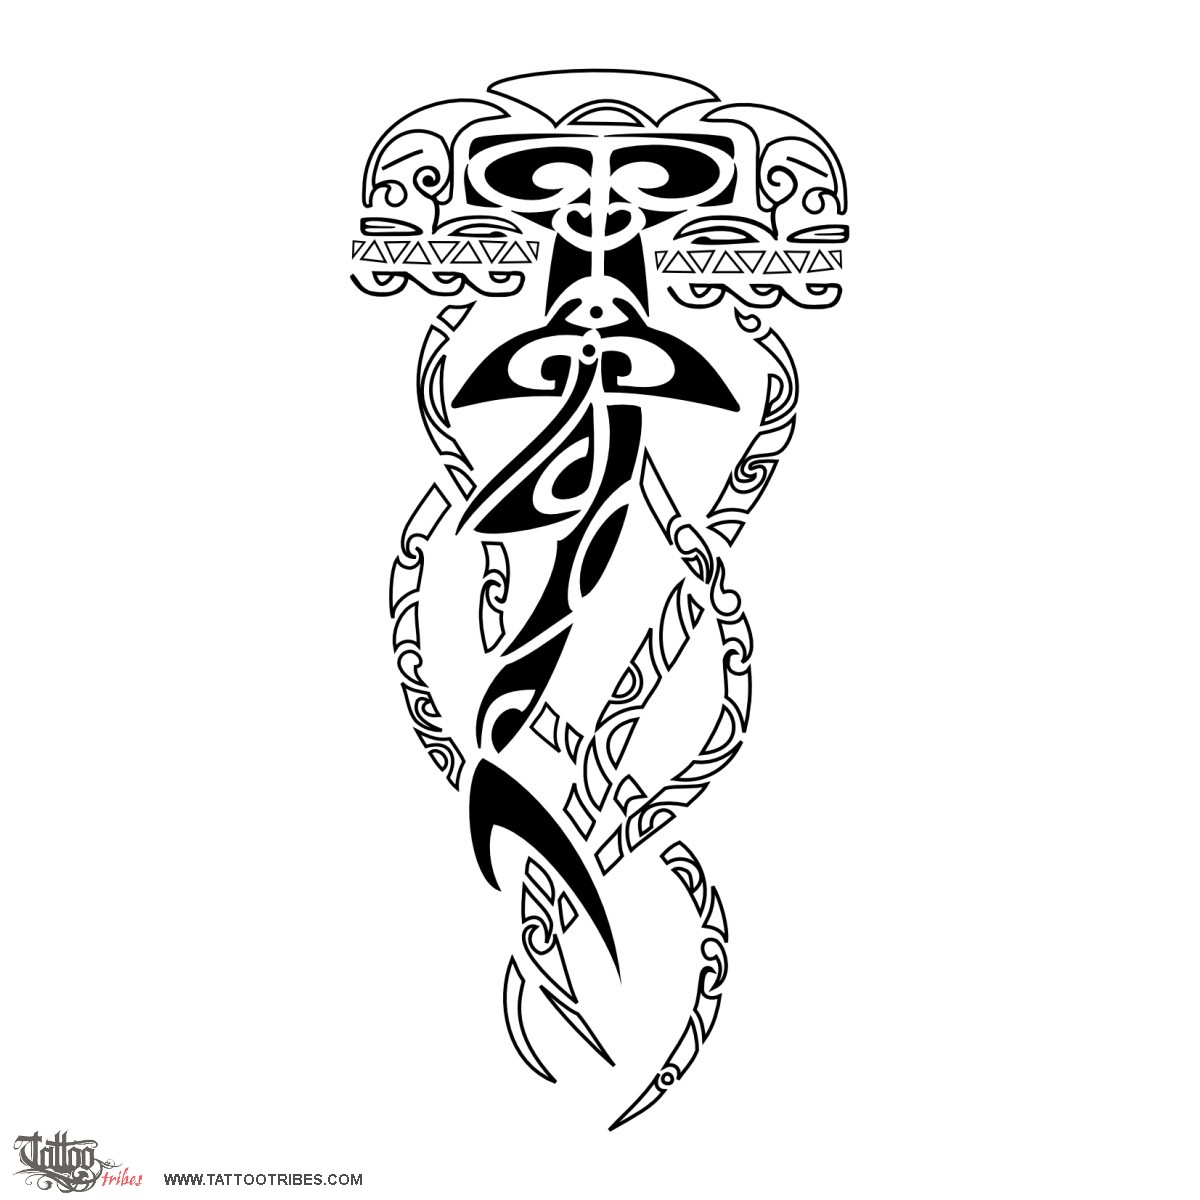 Tribal Jellyfish Tattoo Designs Images Pictures